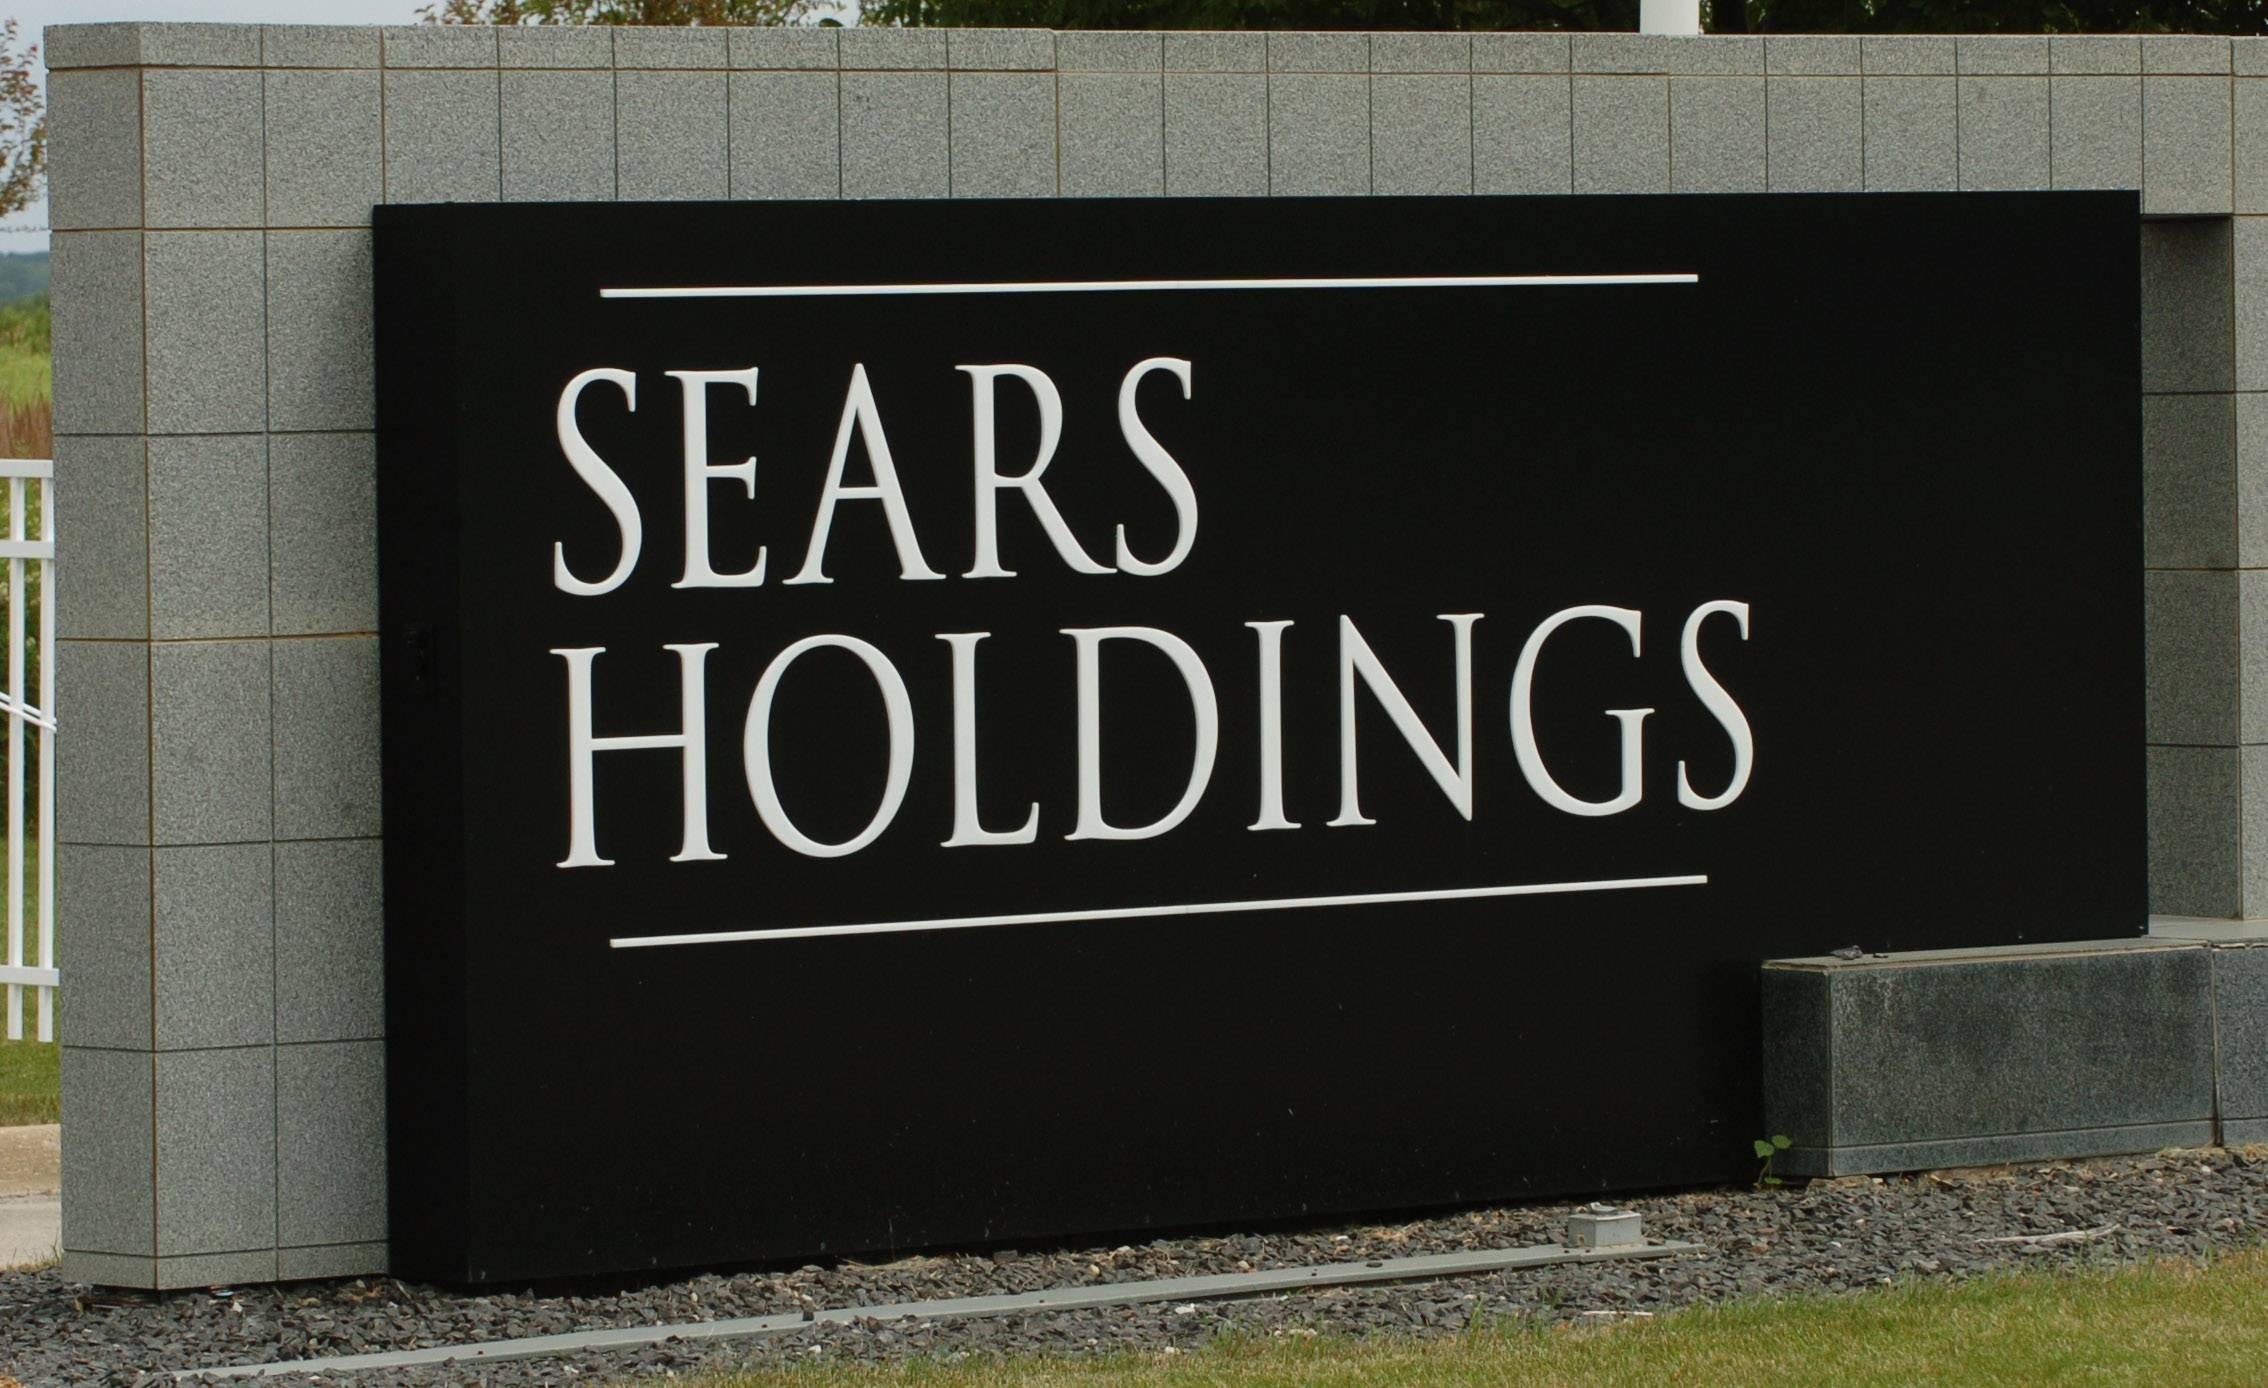 DAILY HERALD FILE PHOTO Sears Holdings, Claire's Stores and Nine West Holdings are among seven chains at high risk of defaulting within a year as shoppers shift to online merchants and spend more on experiences, according to a Fitch Ratings study of retail bankruptcies.